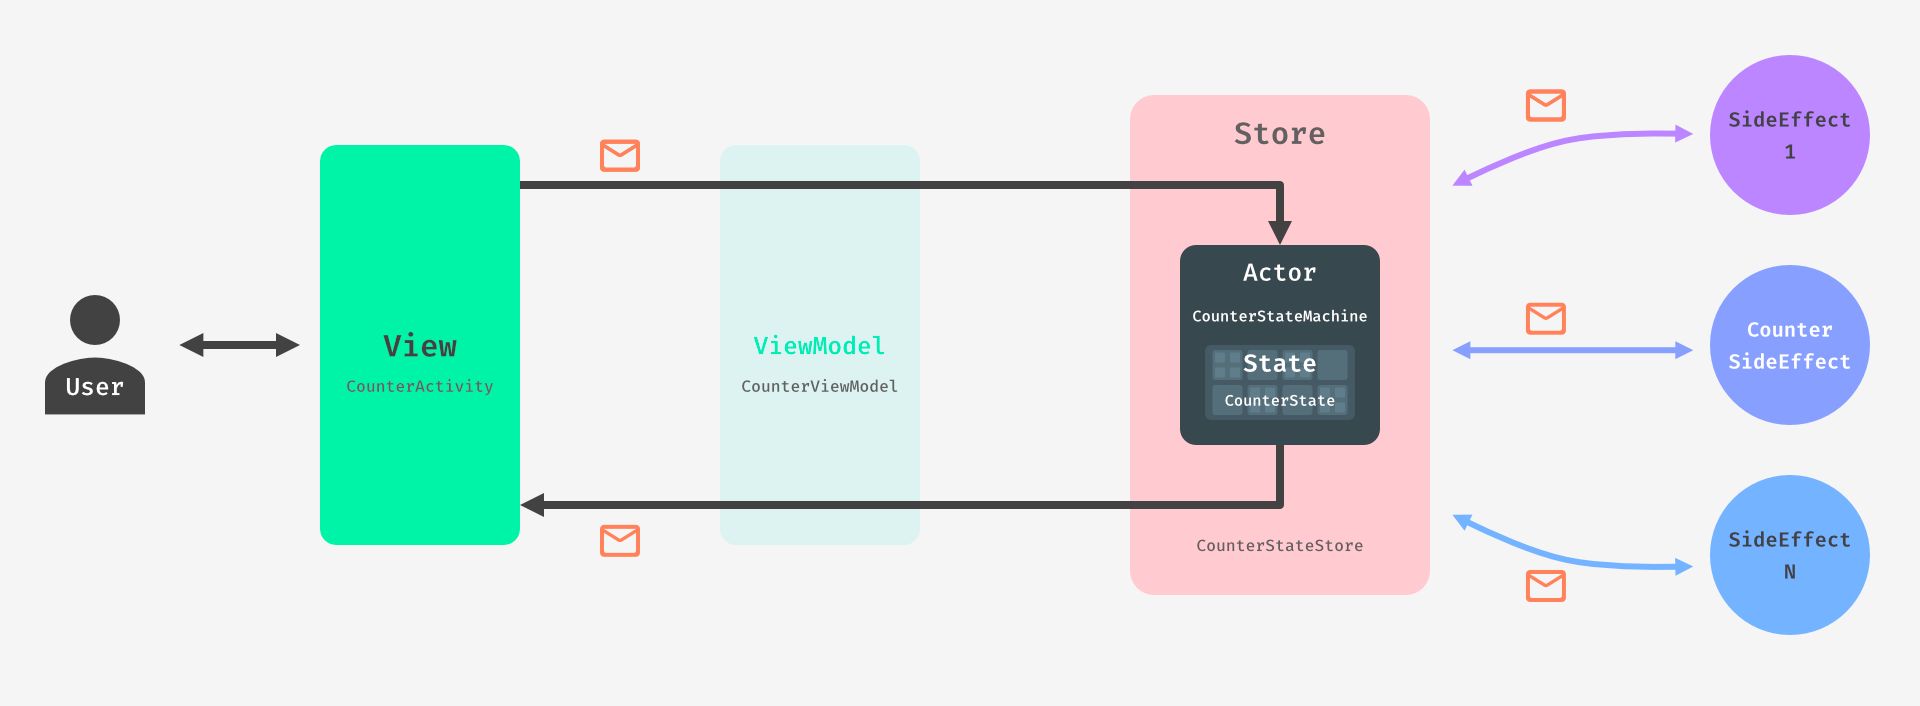 Flowchart explaining the architecture of a simple counter app